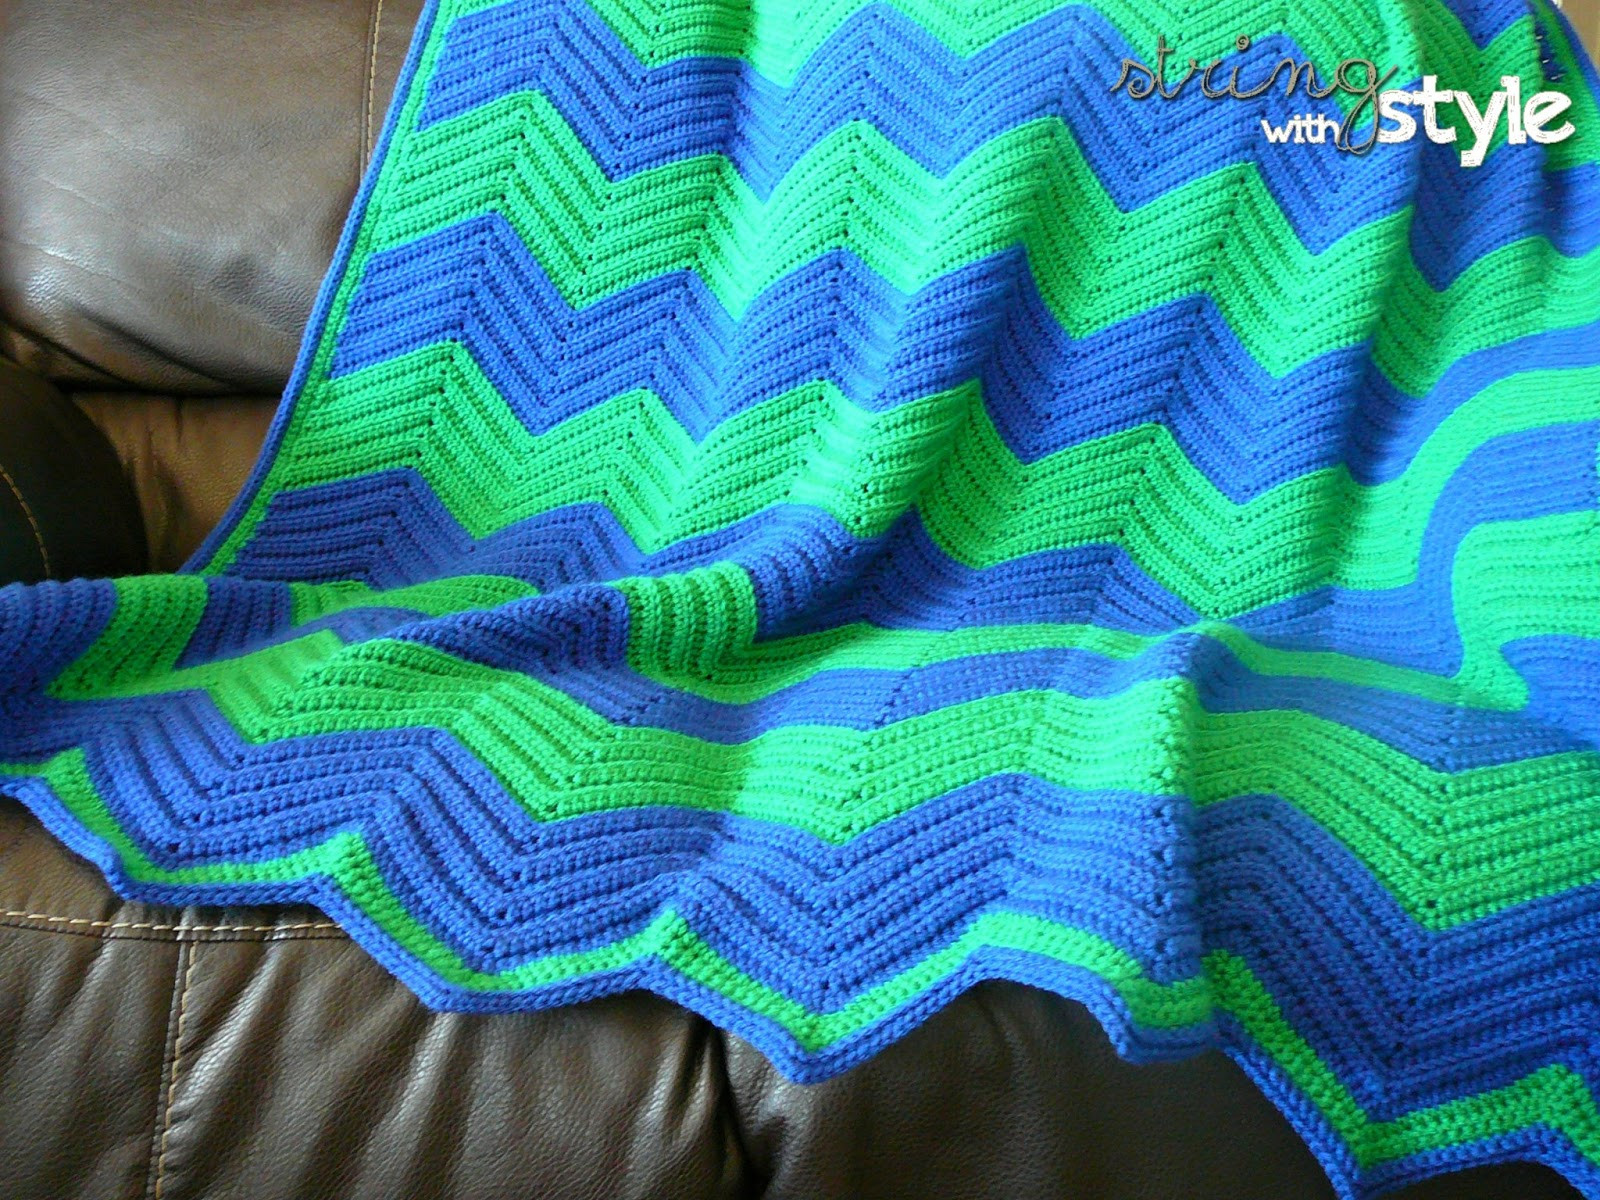 Chevron Crochet Pattern Elegant String with Style Chevron Love Afghan Of Adorable 49 Pictures Chevron Crochet Pattern